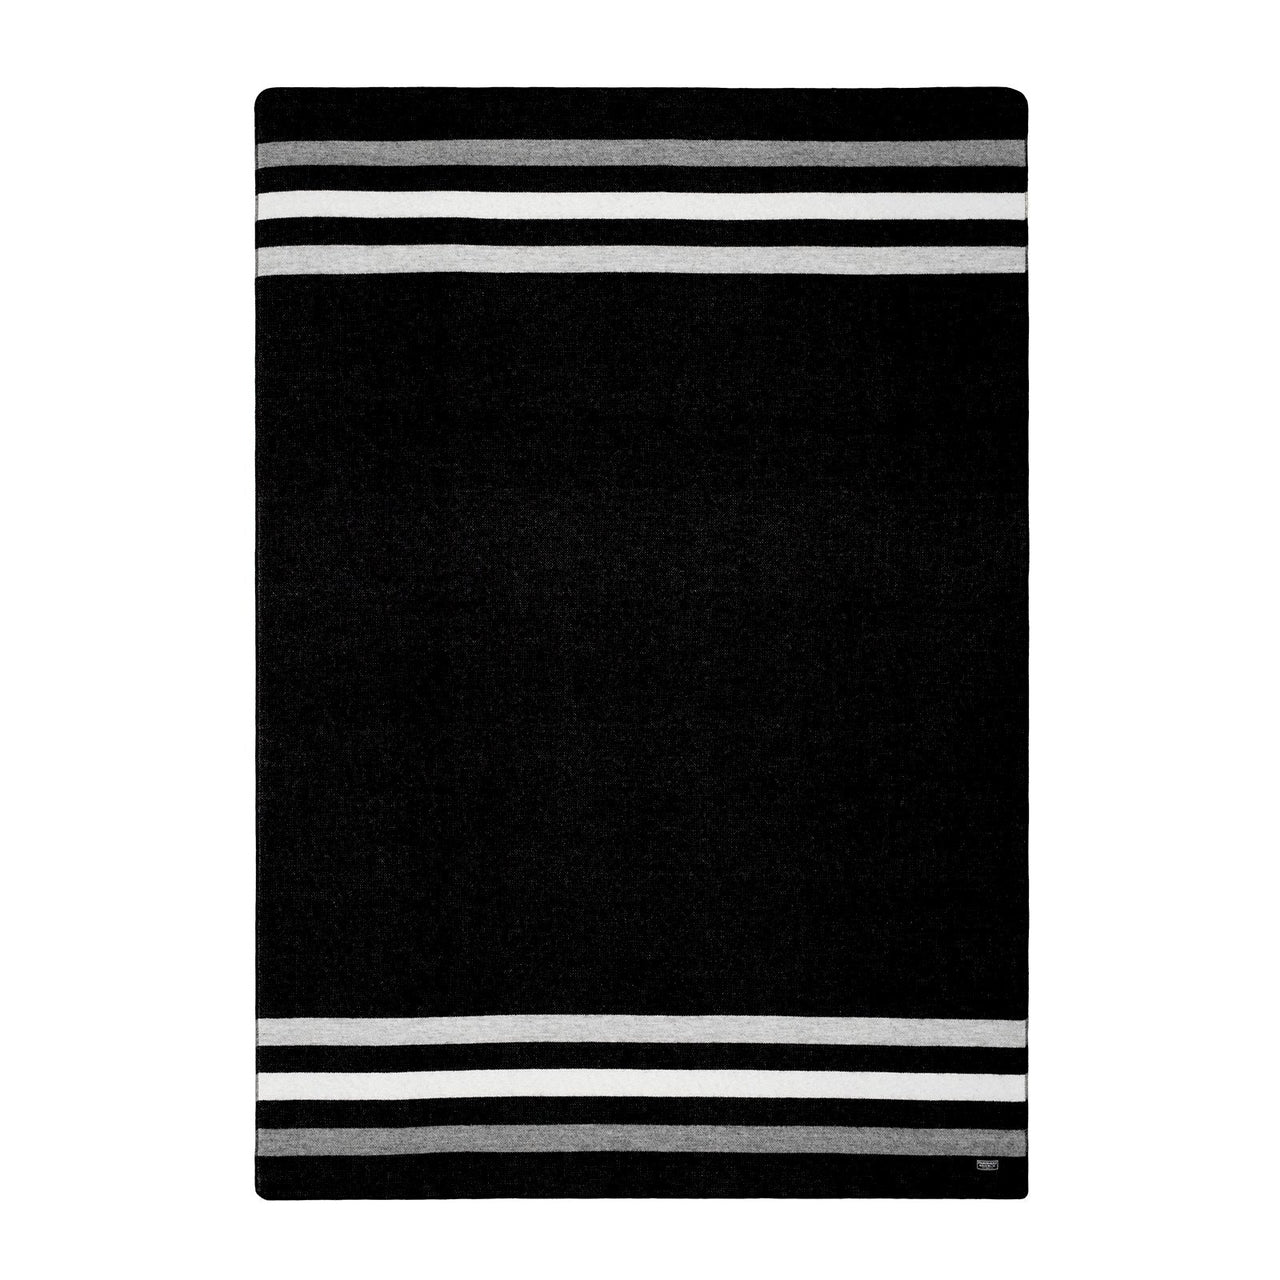 "Manta ""Revival stripe black & heather grey throw ""Edición Limitada"", 80% lana merina y 20% algodón - Just the Sea by SEA LOVERS"